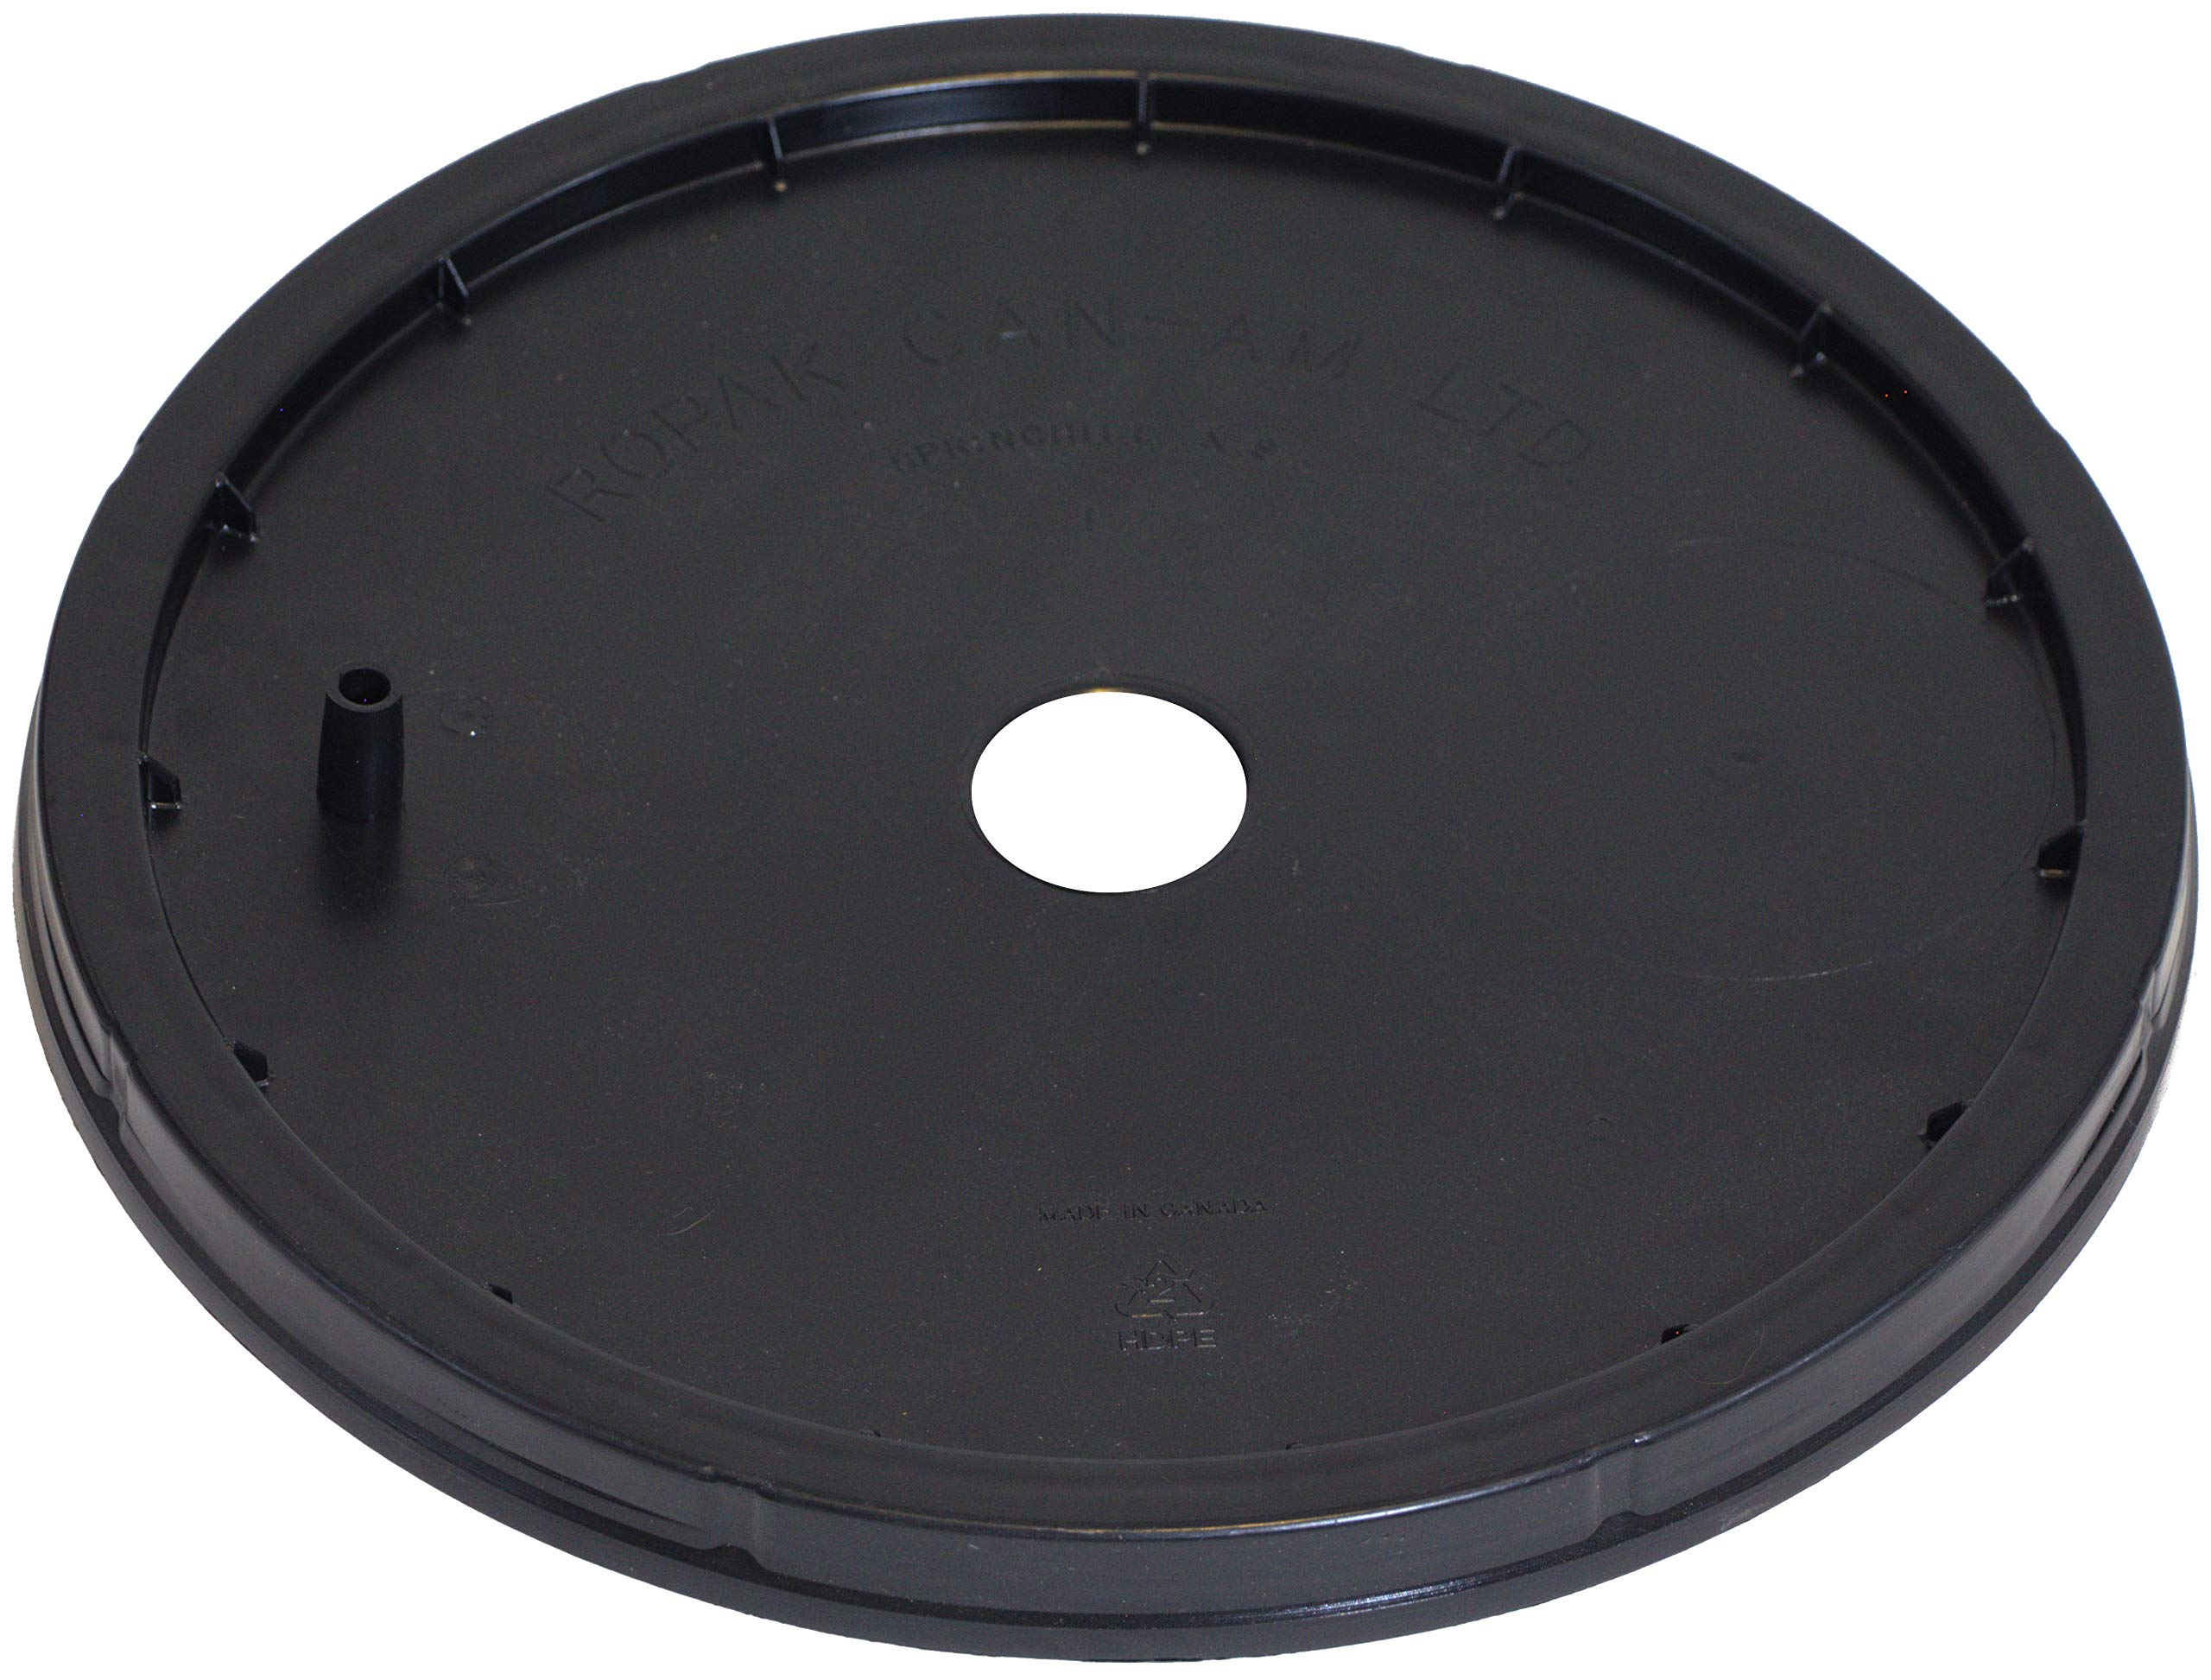 30L Ropak Lid with #10 Stopper-Sized Hole